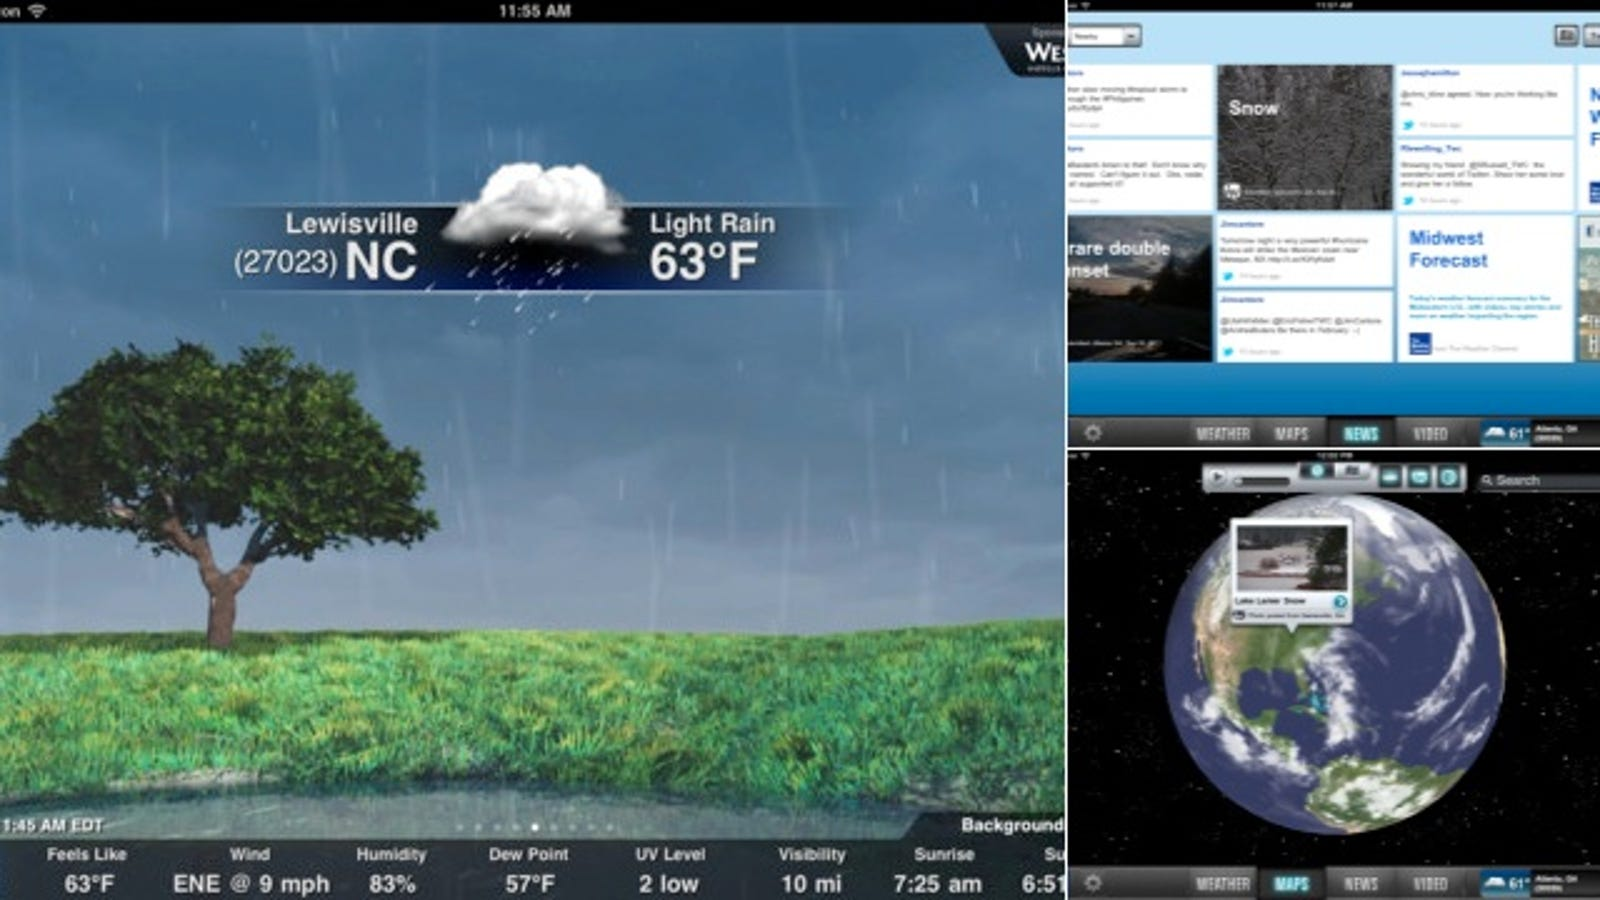 weather channel app for windows 7 not working